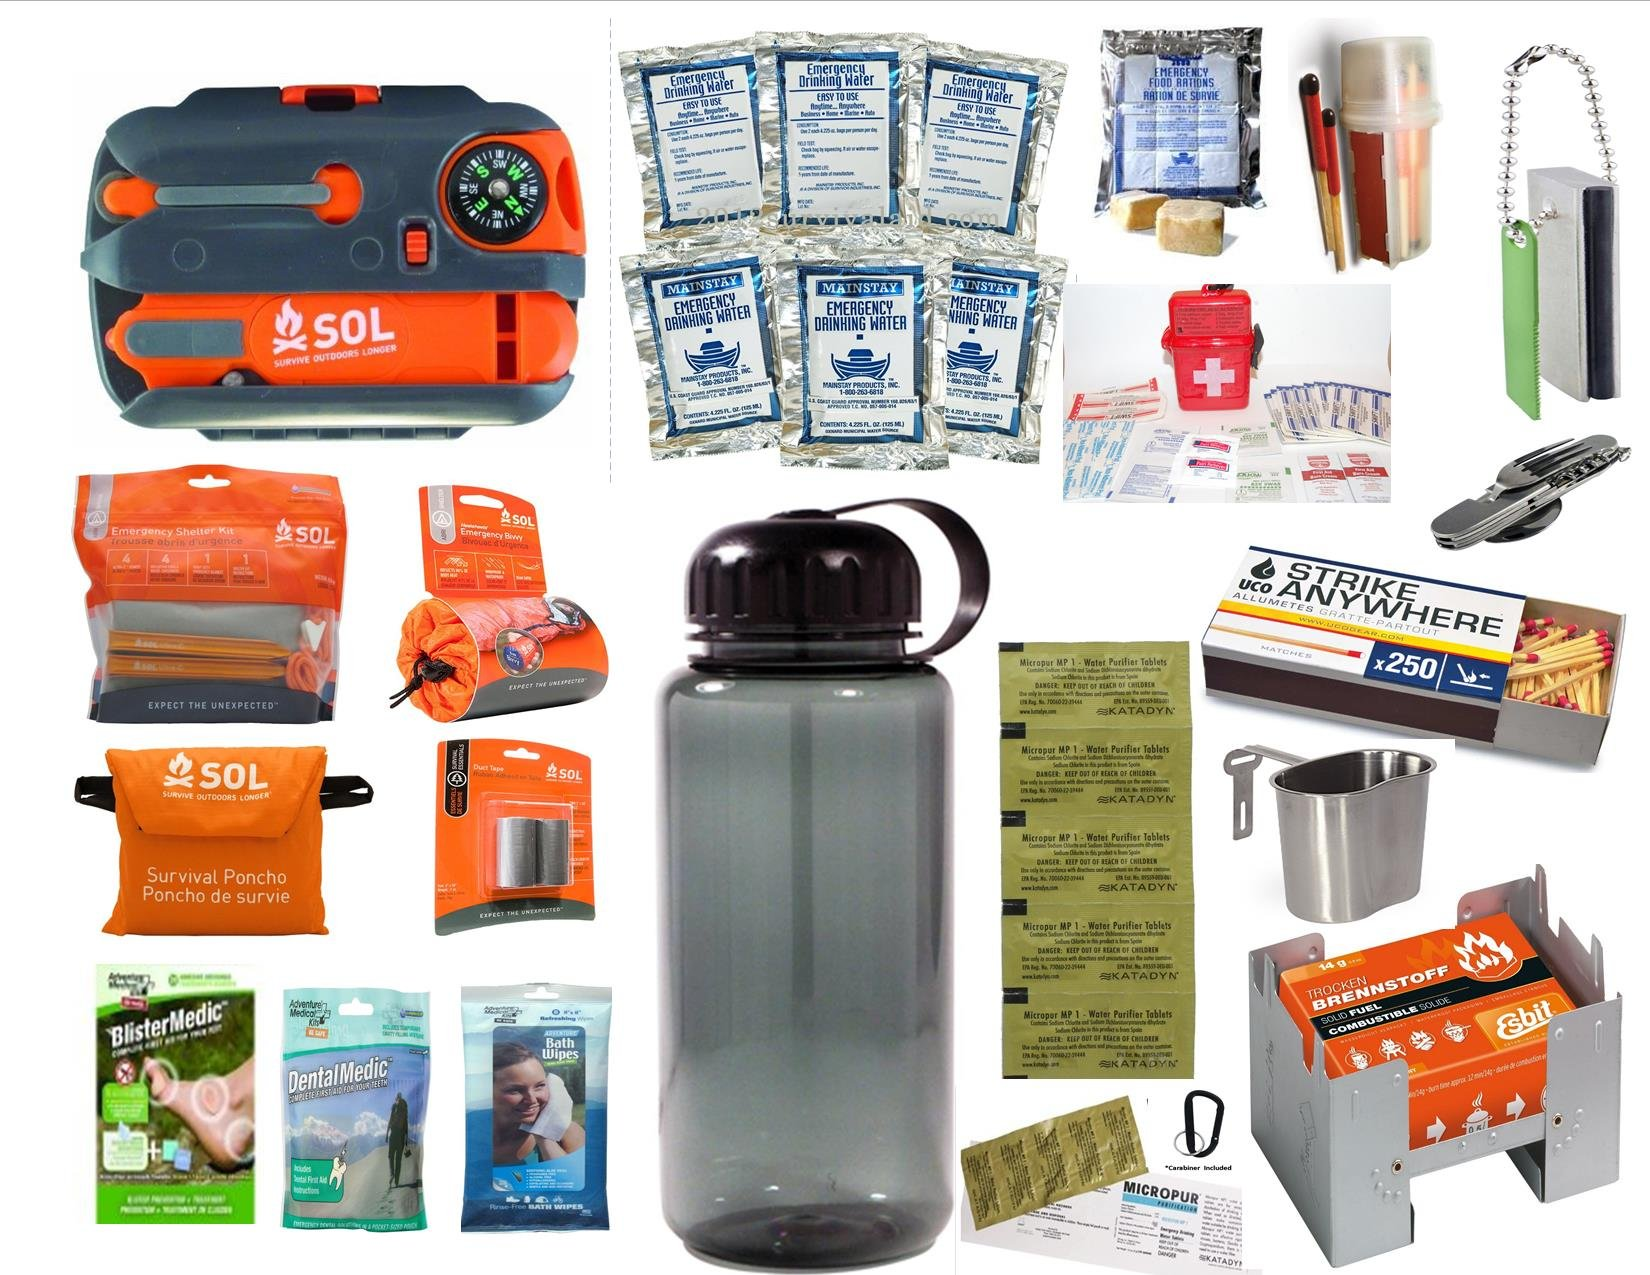 READI USA AMK/SOL SURVIVAL ESSENTIALS KIT